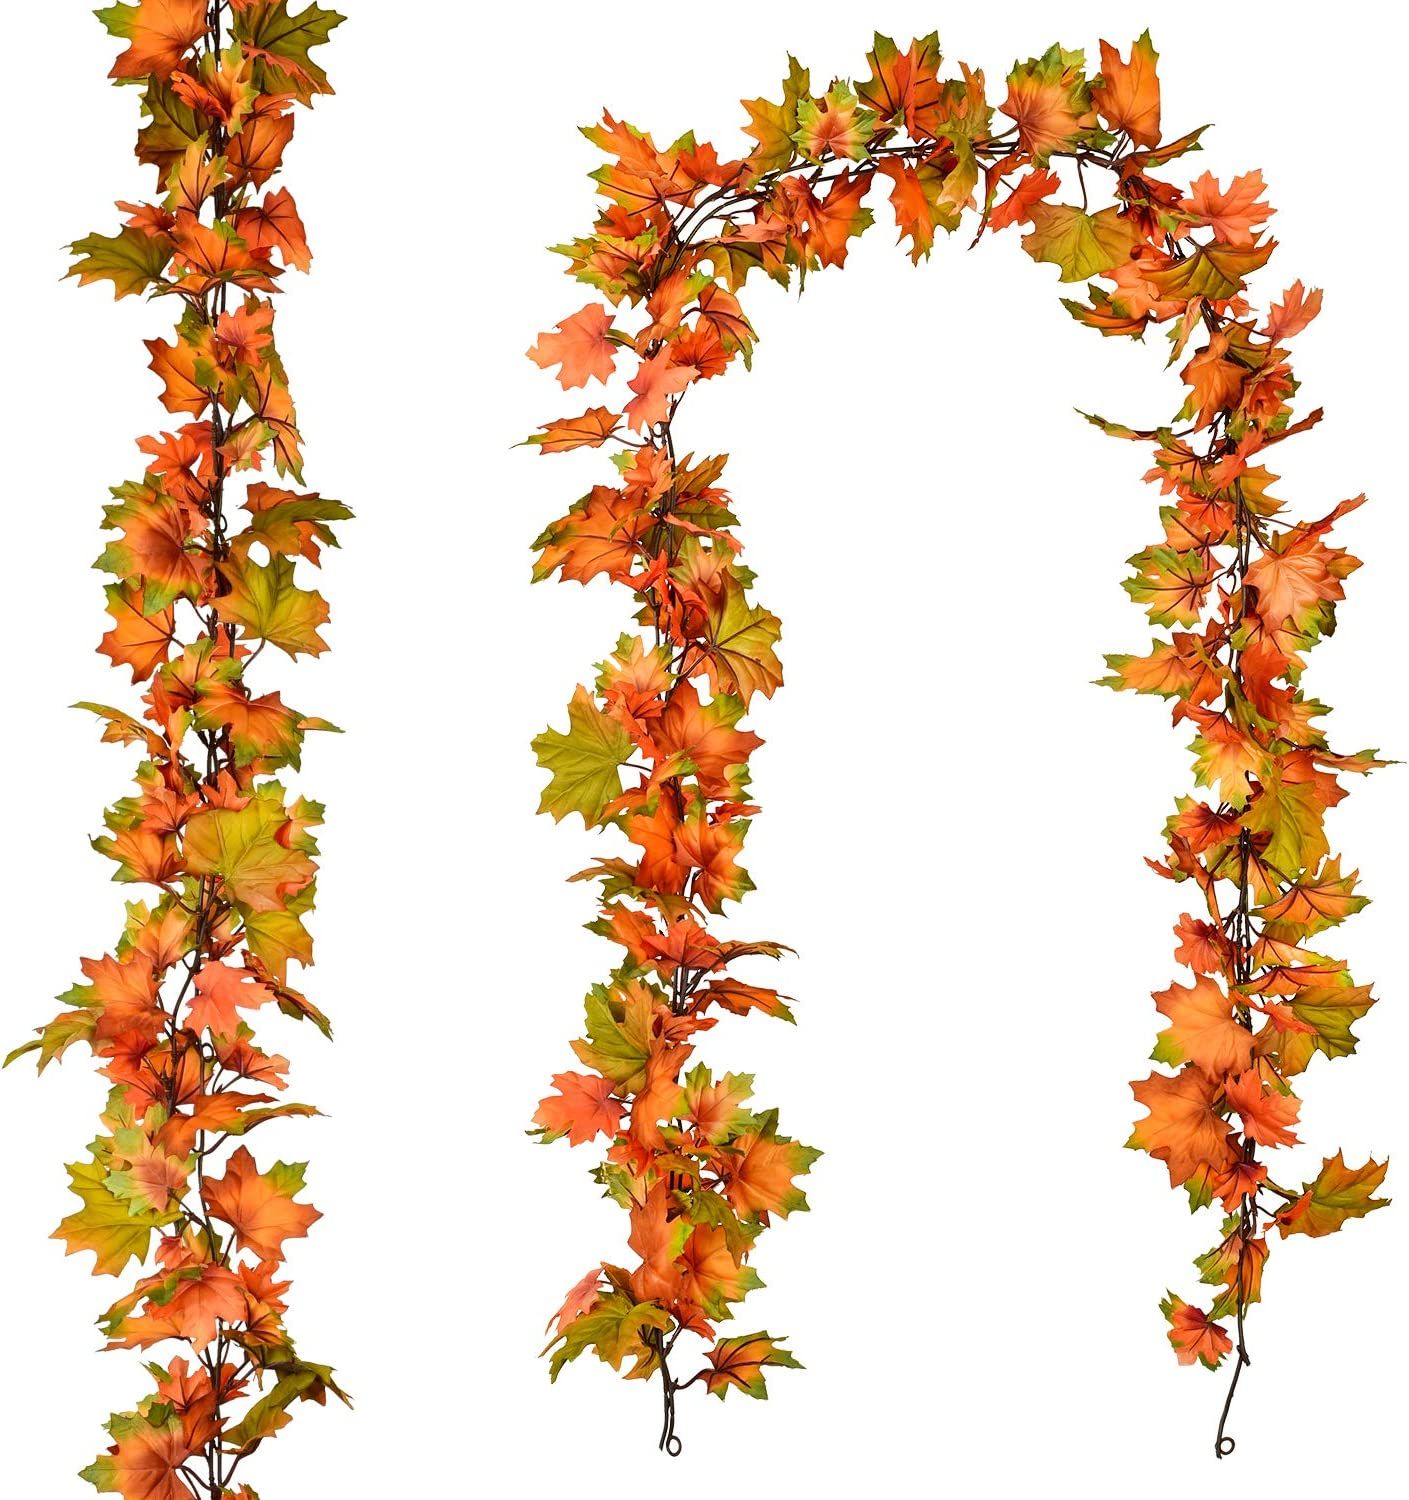 2 Pack Fall Garland Maple Leaf, 6.5Ft/Piece Hanging Vine Garland Artificial Autumn Foliage Garland Thanksgiving Decor for Home Wedding Fireplace Party